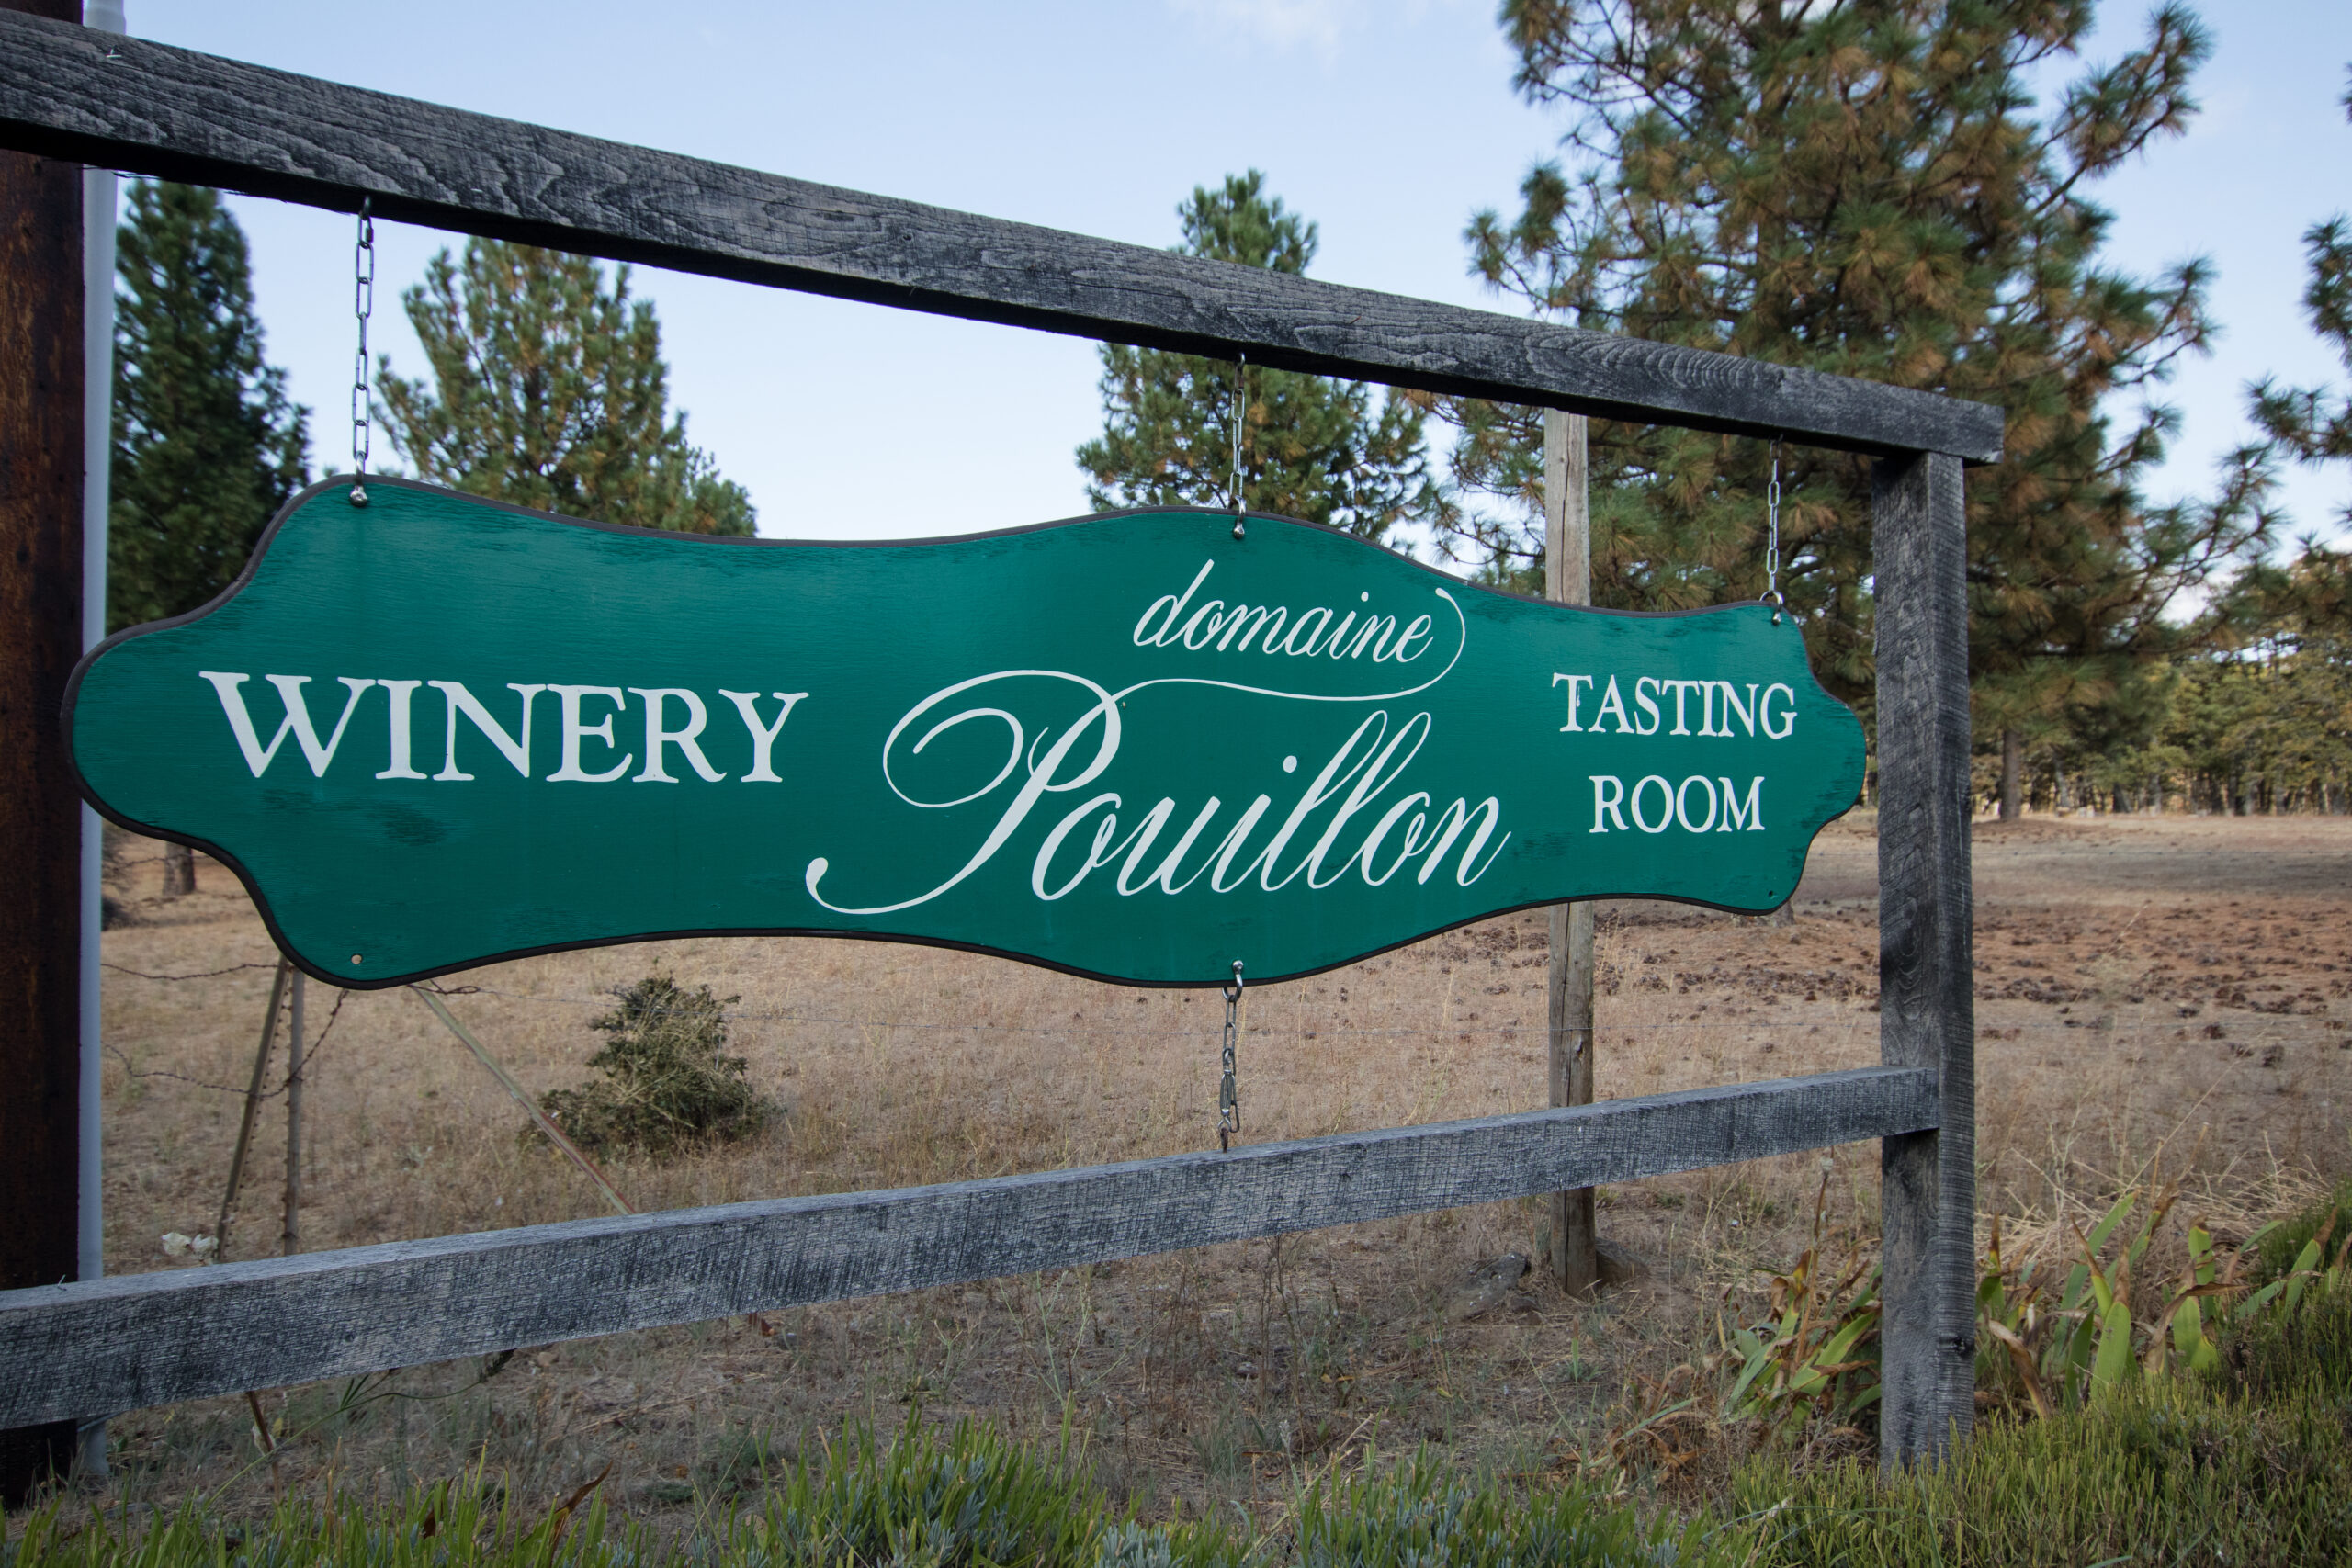 Domaine Puillon winery in Lyle, Washington